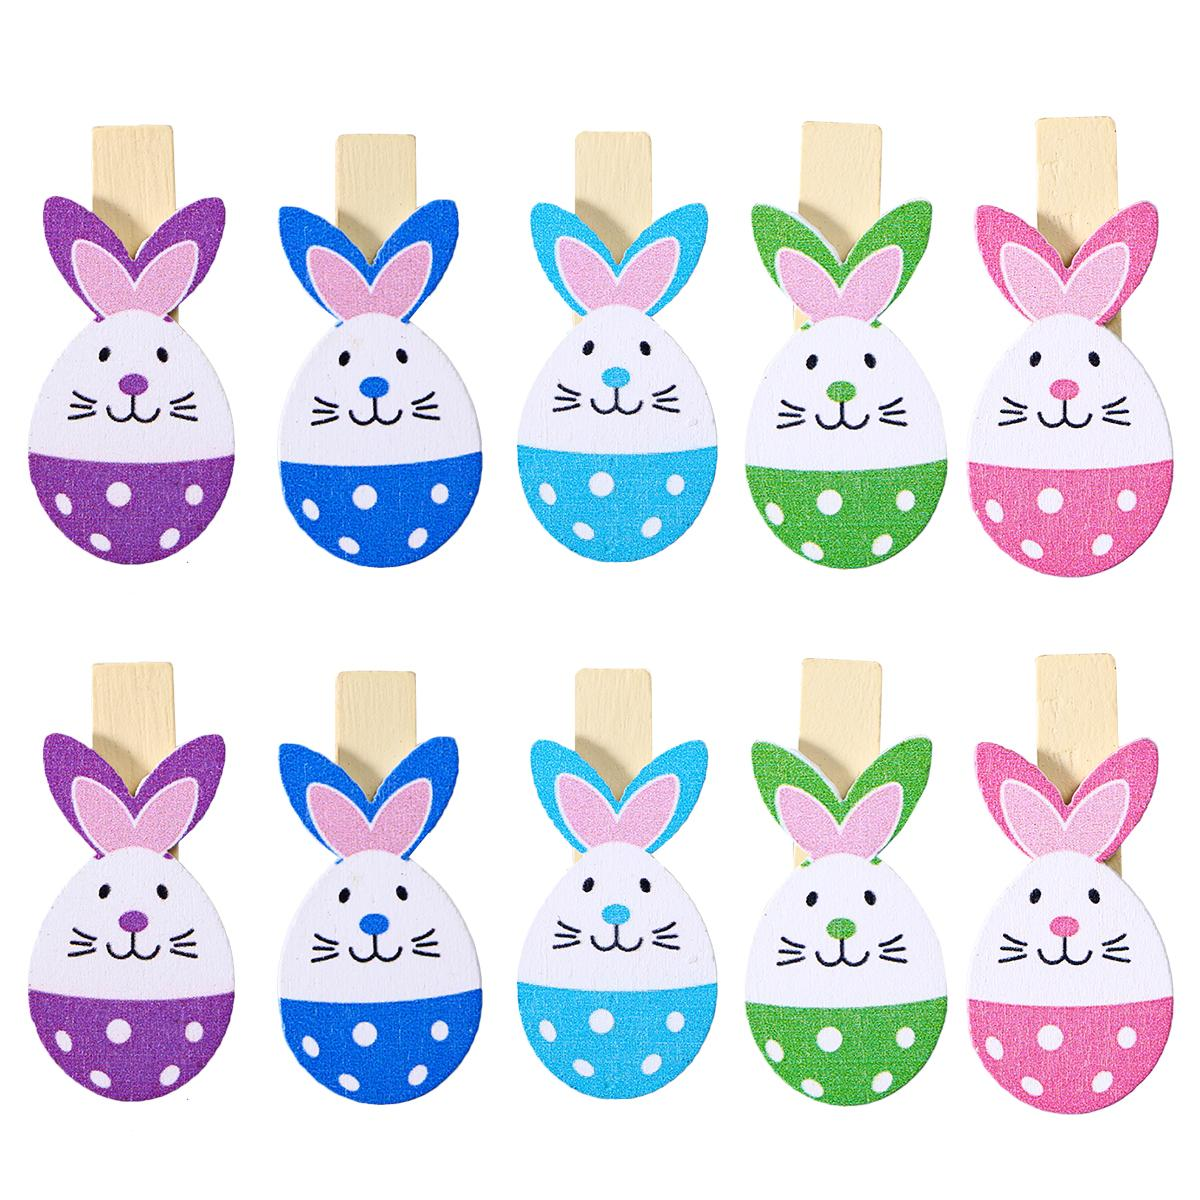 Lovely Rabbit Colored Wooden Pegs Note Memo Photo Clips Holder Craft Clips Ornaments for Easter Party Decoration